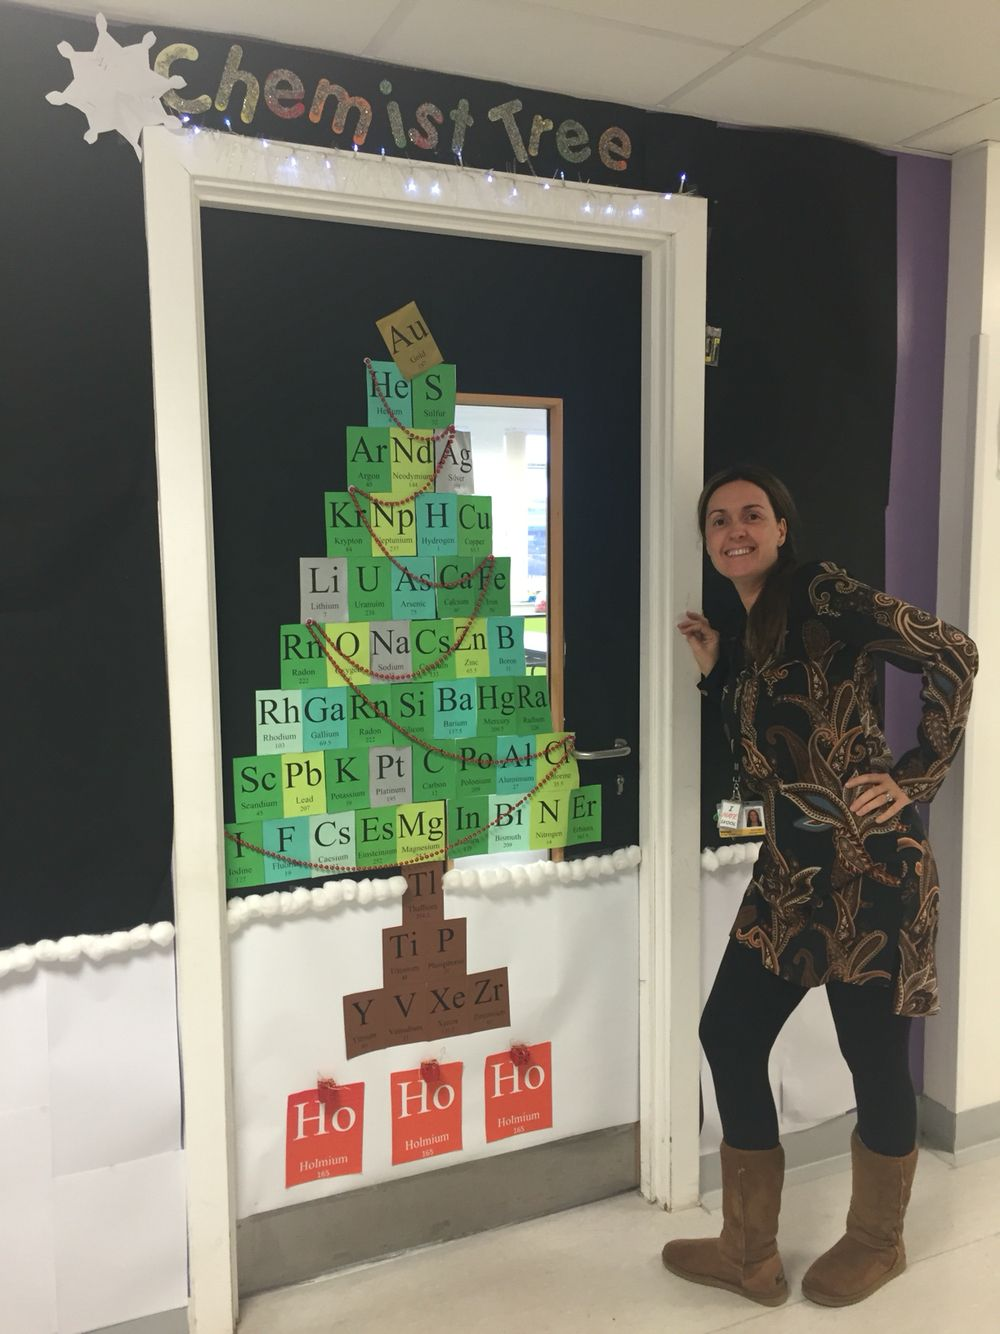 Christmas Door Competition Chemist Tree Chemistry